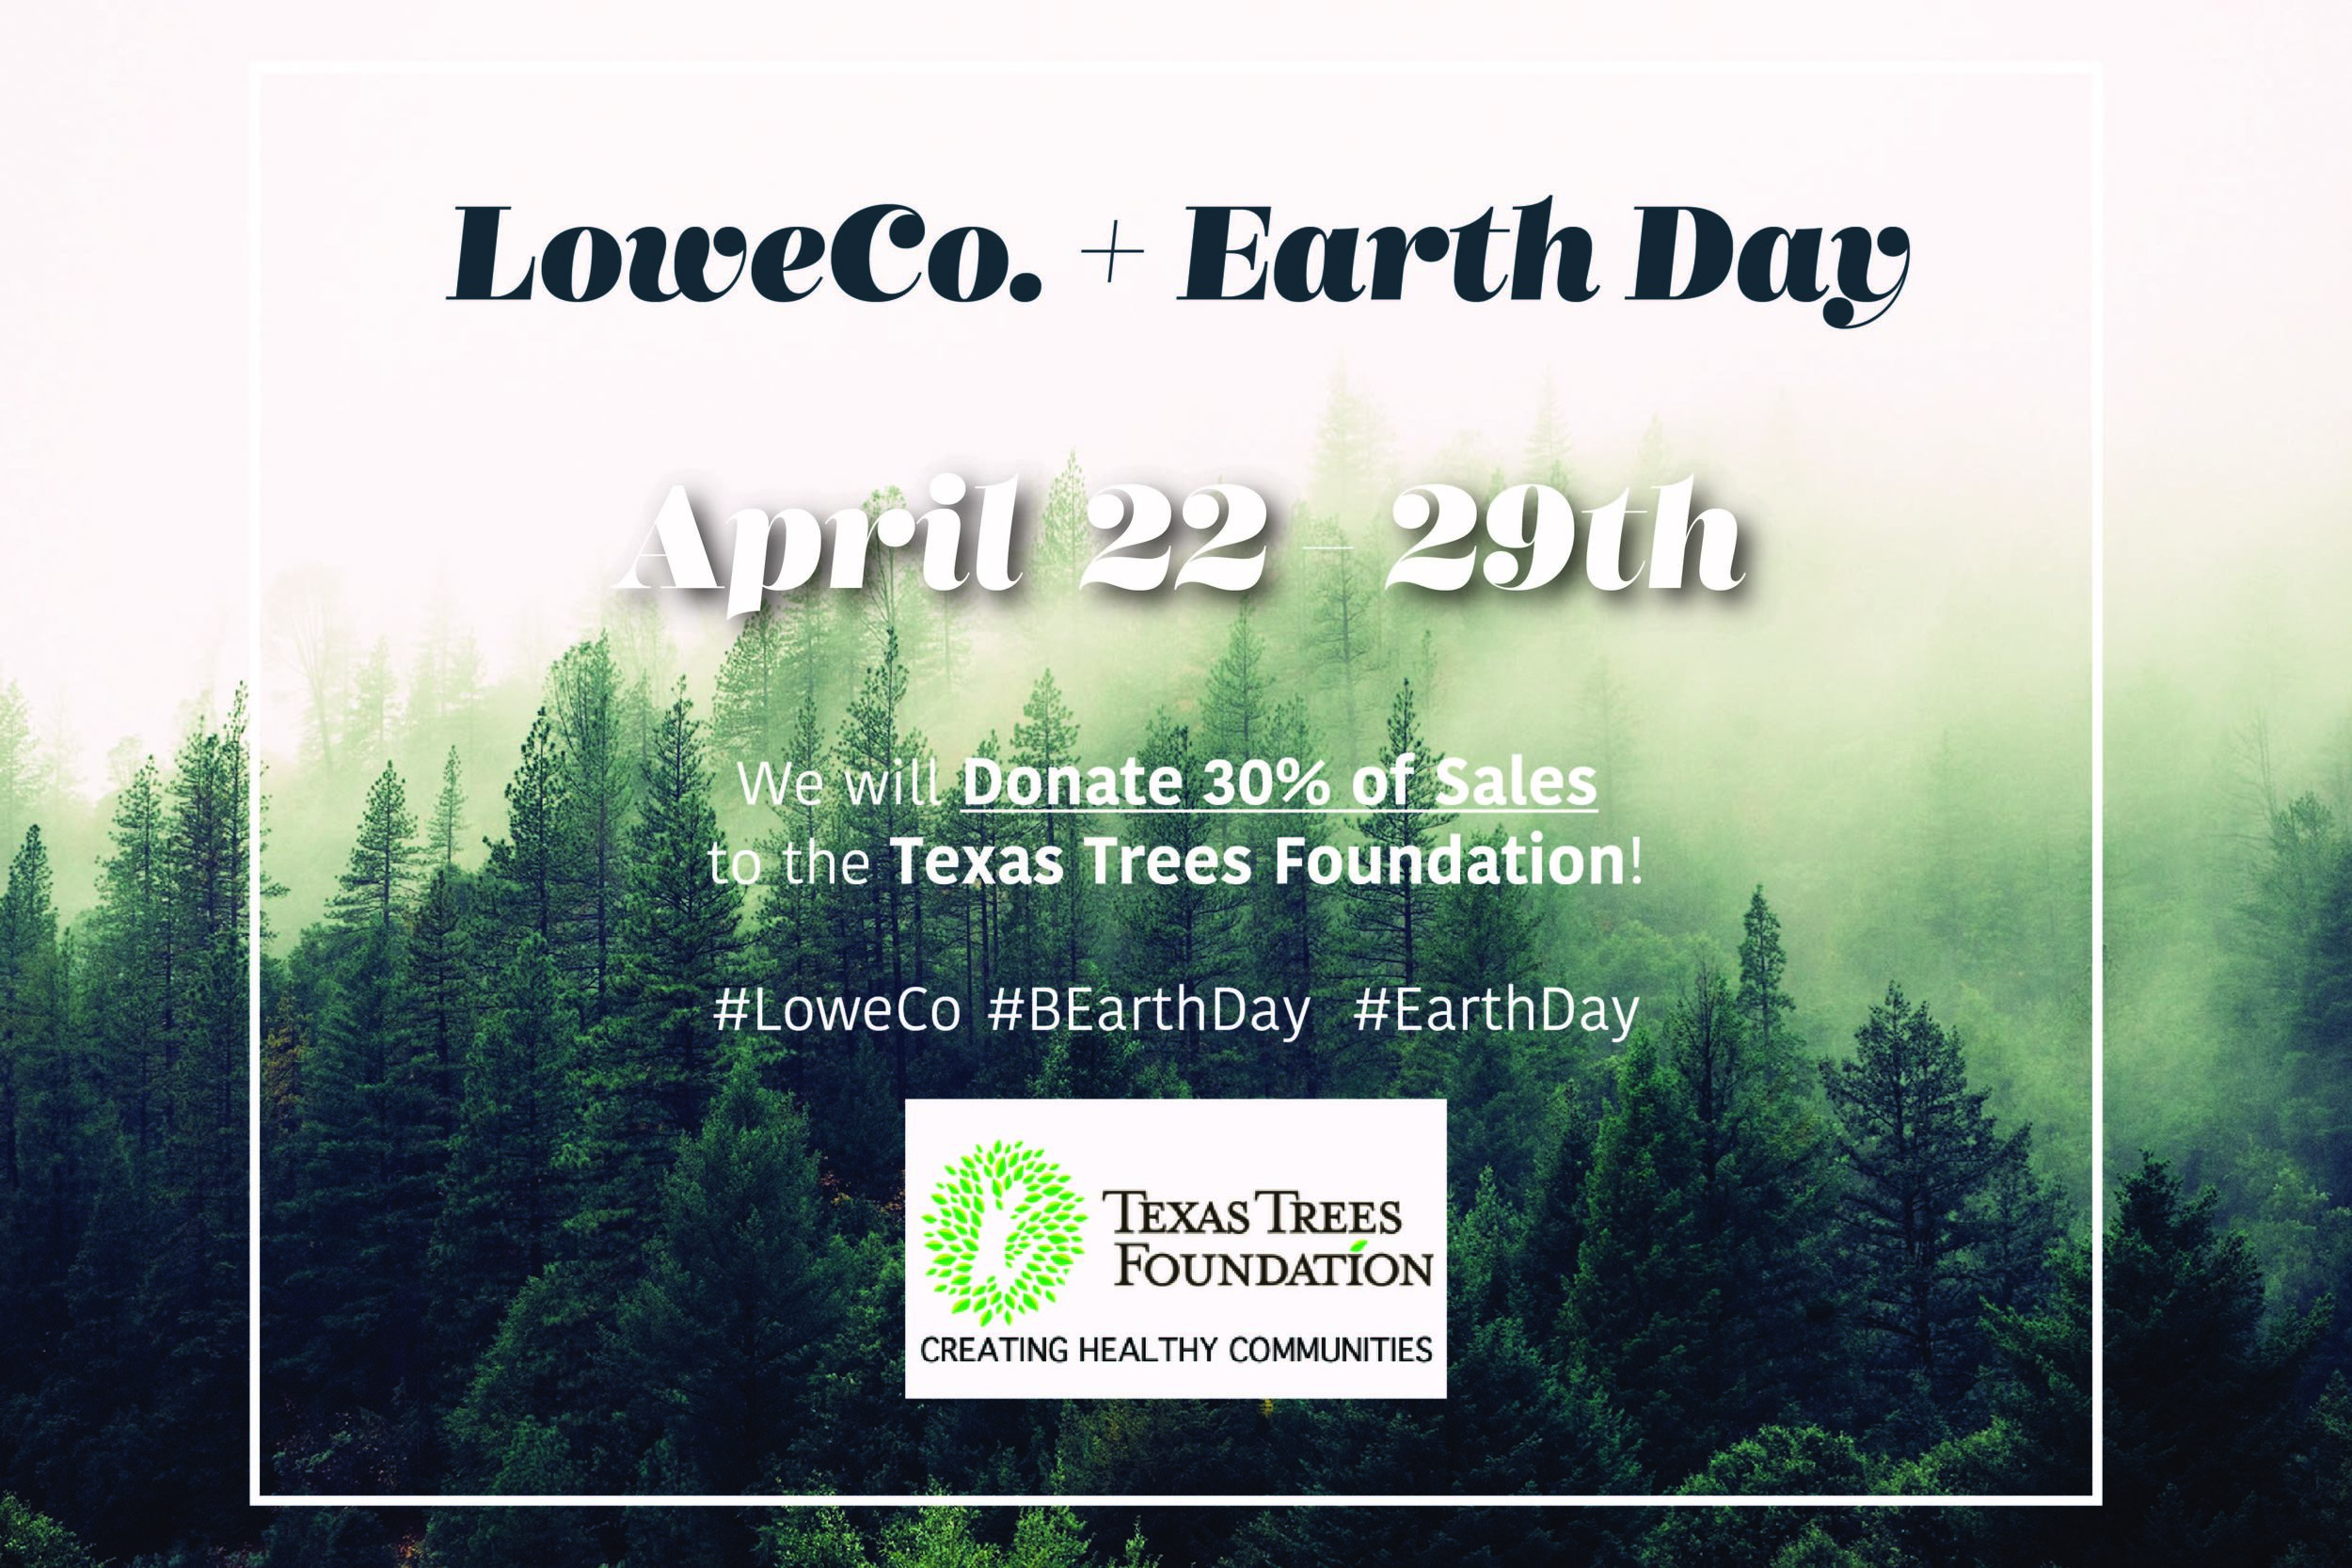 LoweCo. + Earth Day + Texas Trees Foundation